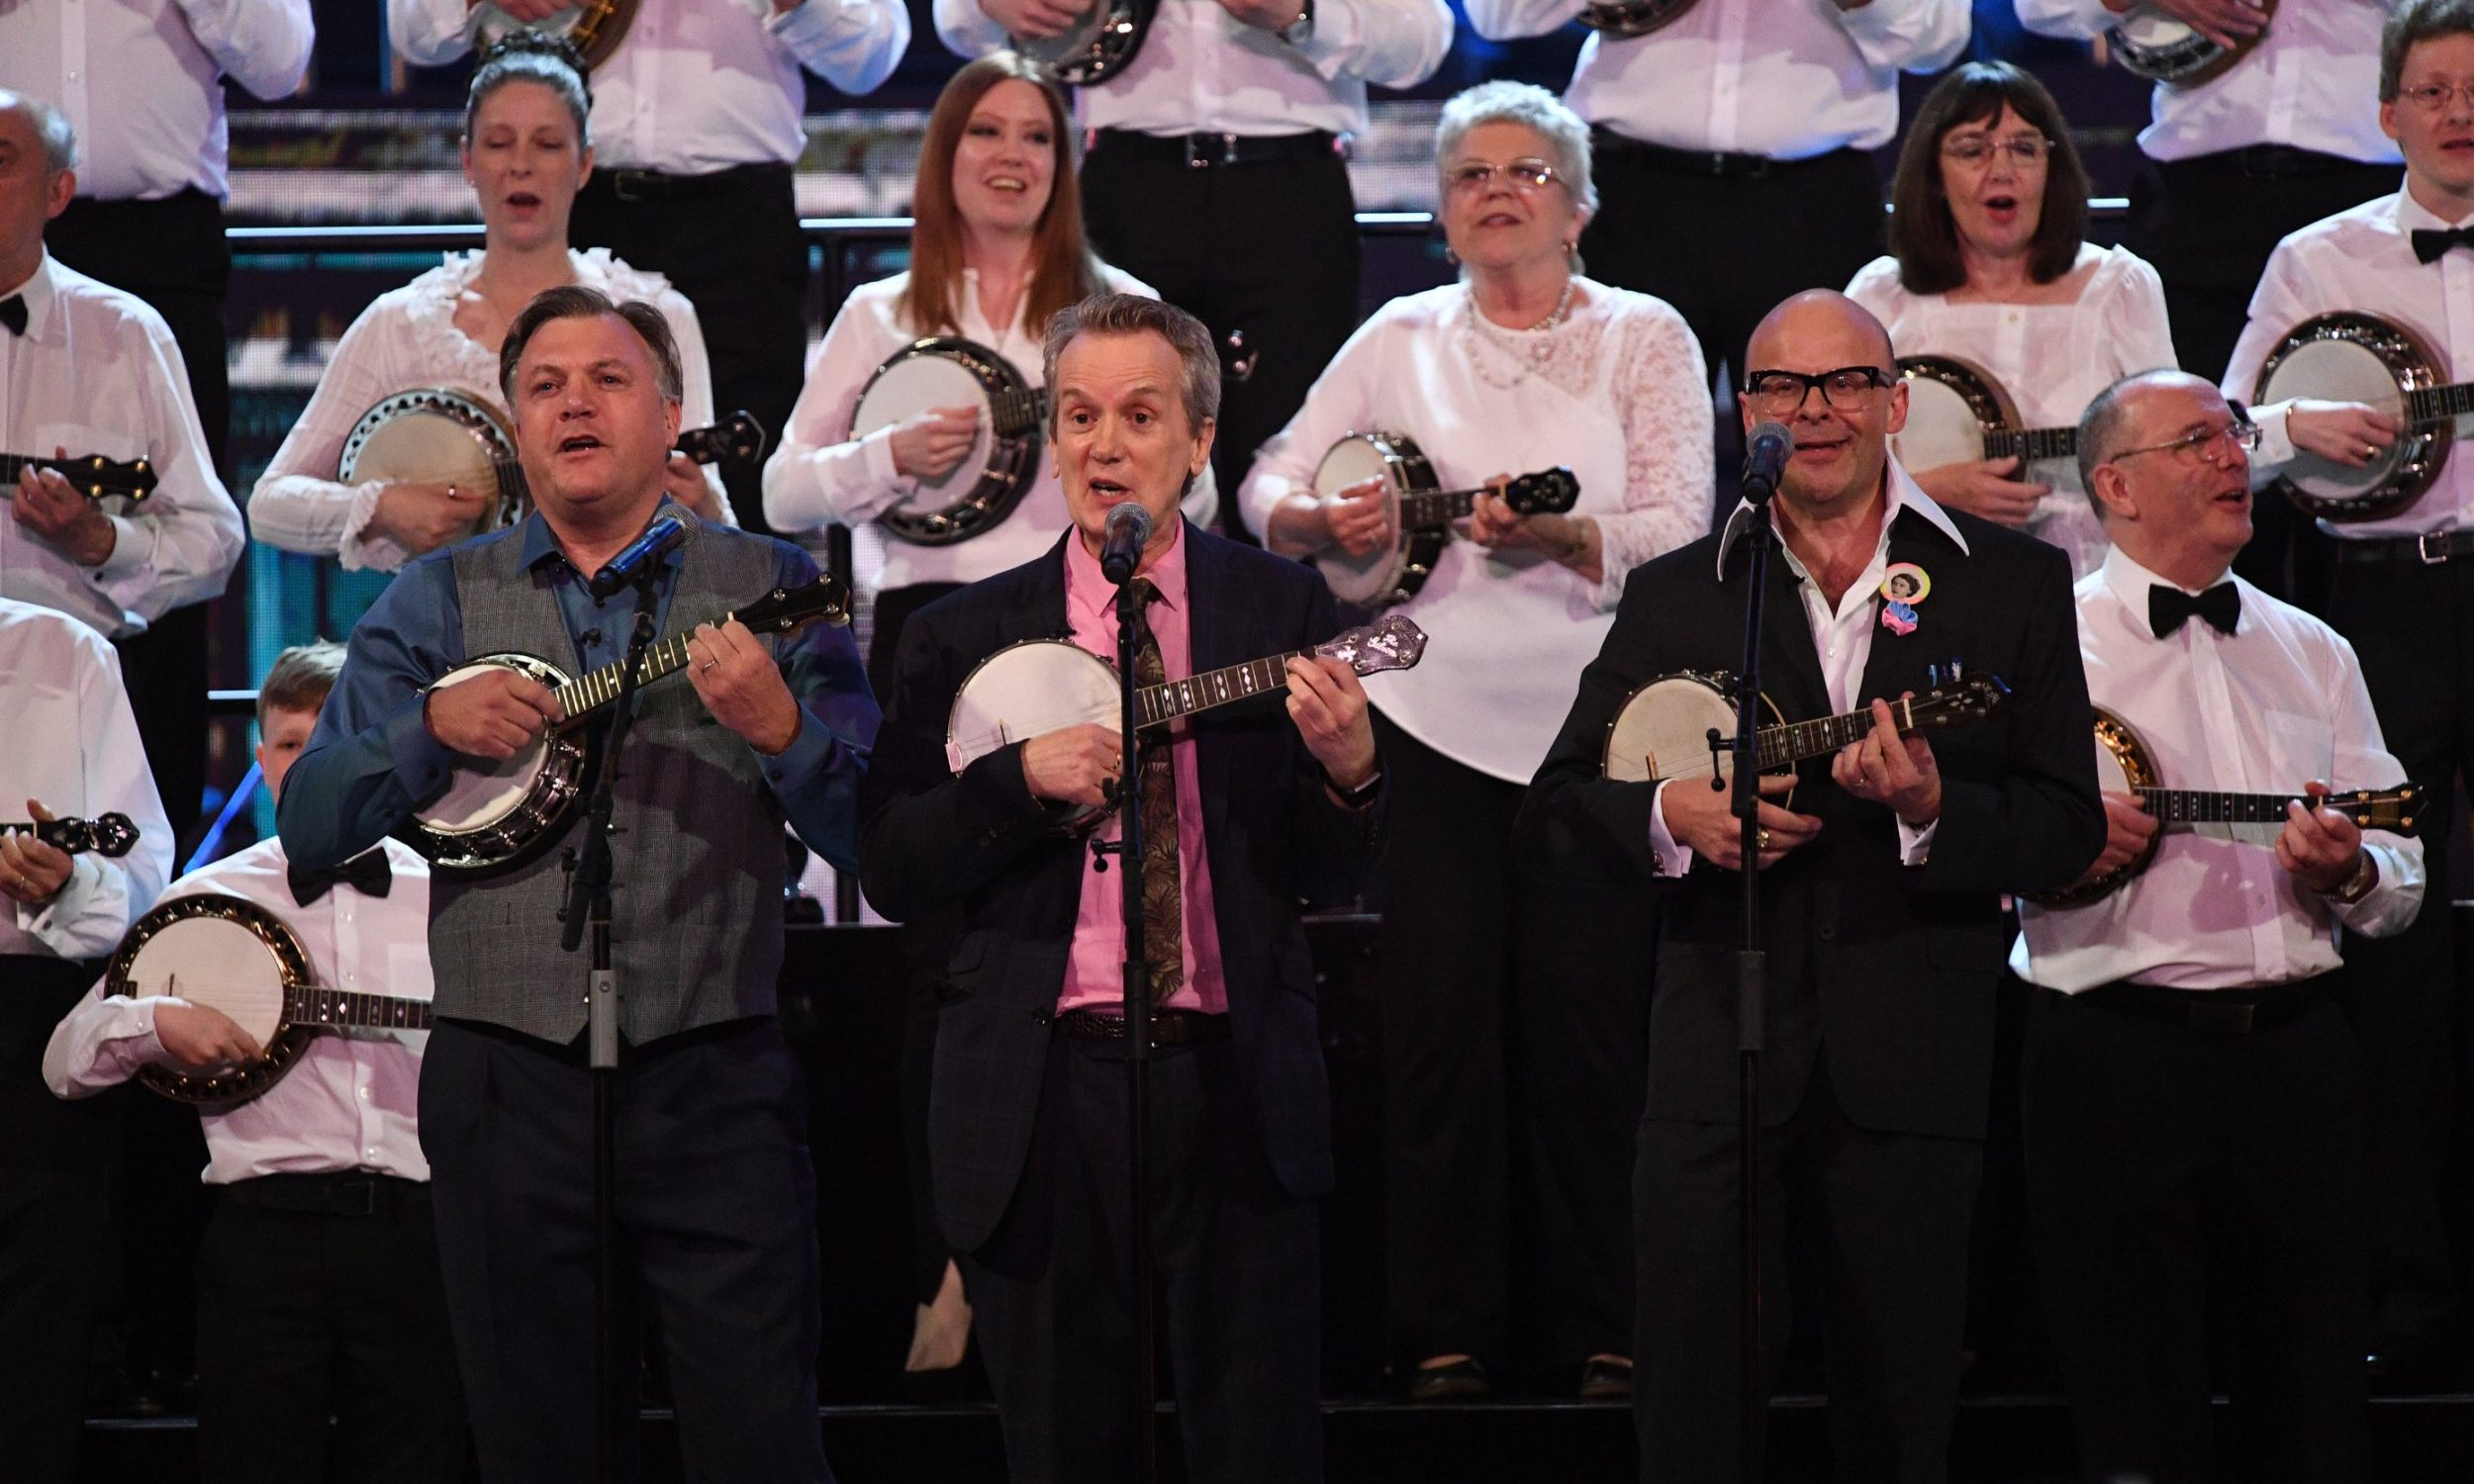 LONDON, ENGLAND - APRIL 21: The George Formby Society featuring Frank Skinner, Harry Hill and Ed Balls perform at the Royal Albert Hall for a star-studded concert to celebrate the Queen's 92nd birthday on April 21, 2018 in London, England. The Queen and members of the royal family are guests of honour at the celebration, which is being billed as The Queen's Birthday Party. (Photo by Andrew Parsons - WPA Pool/Getty Images)